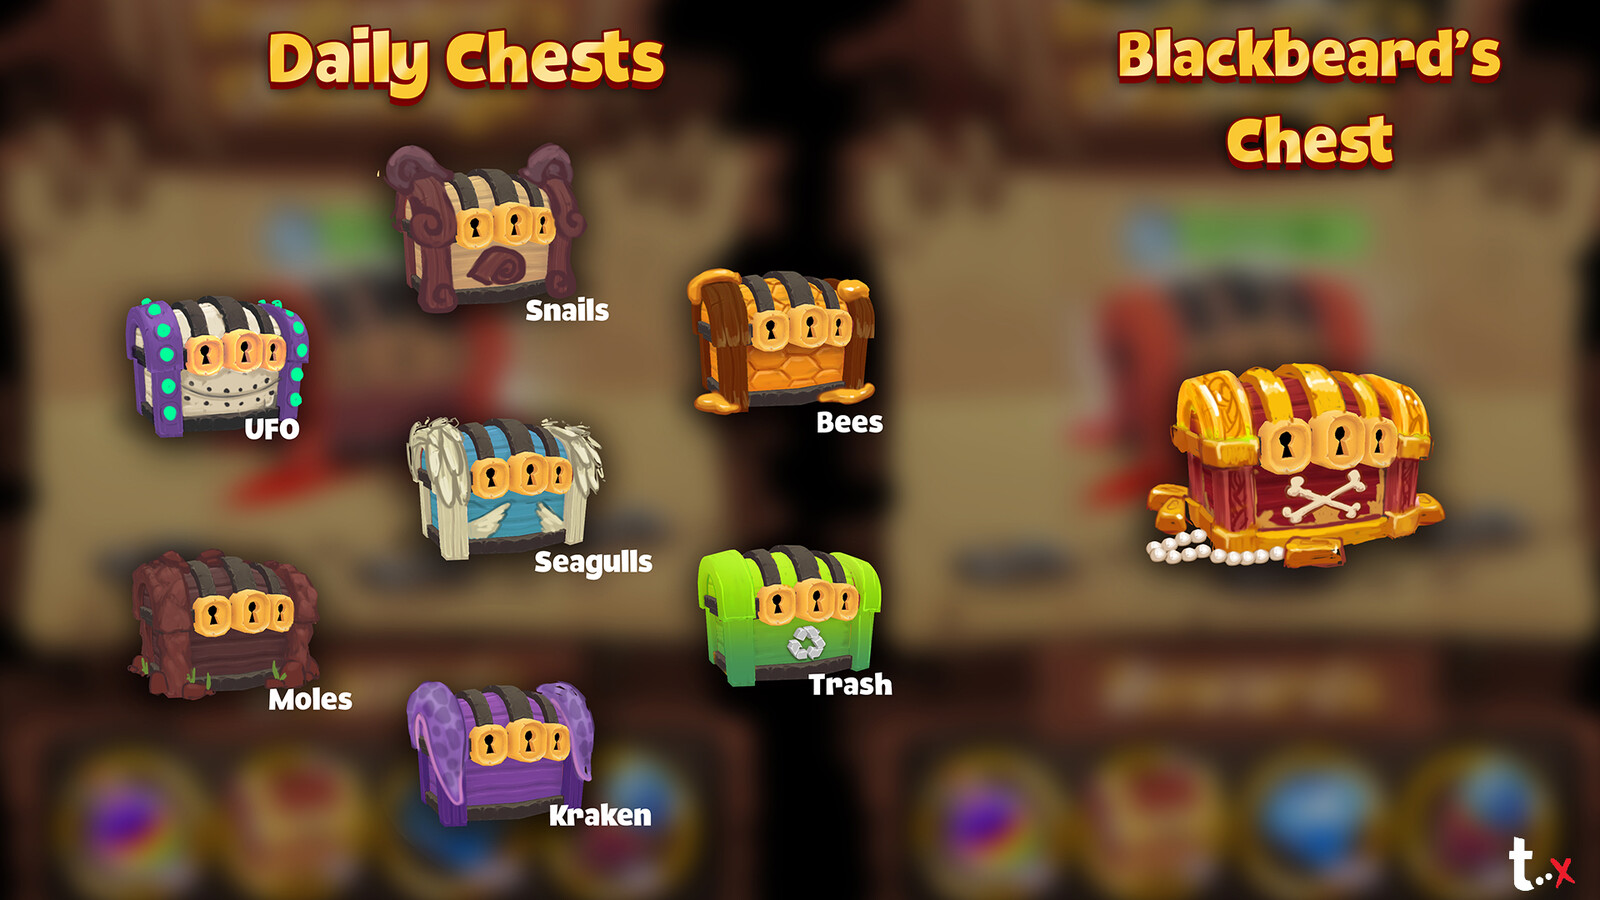 Concepts of themed chests for daily events.